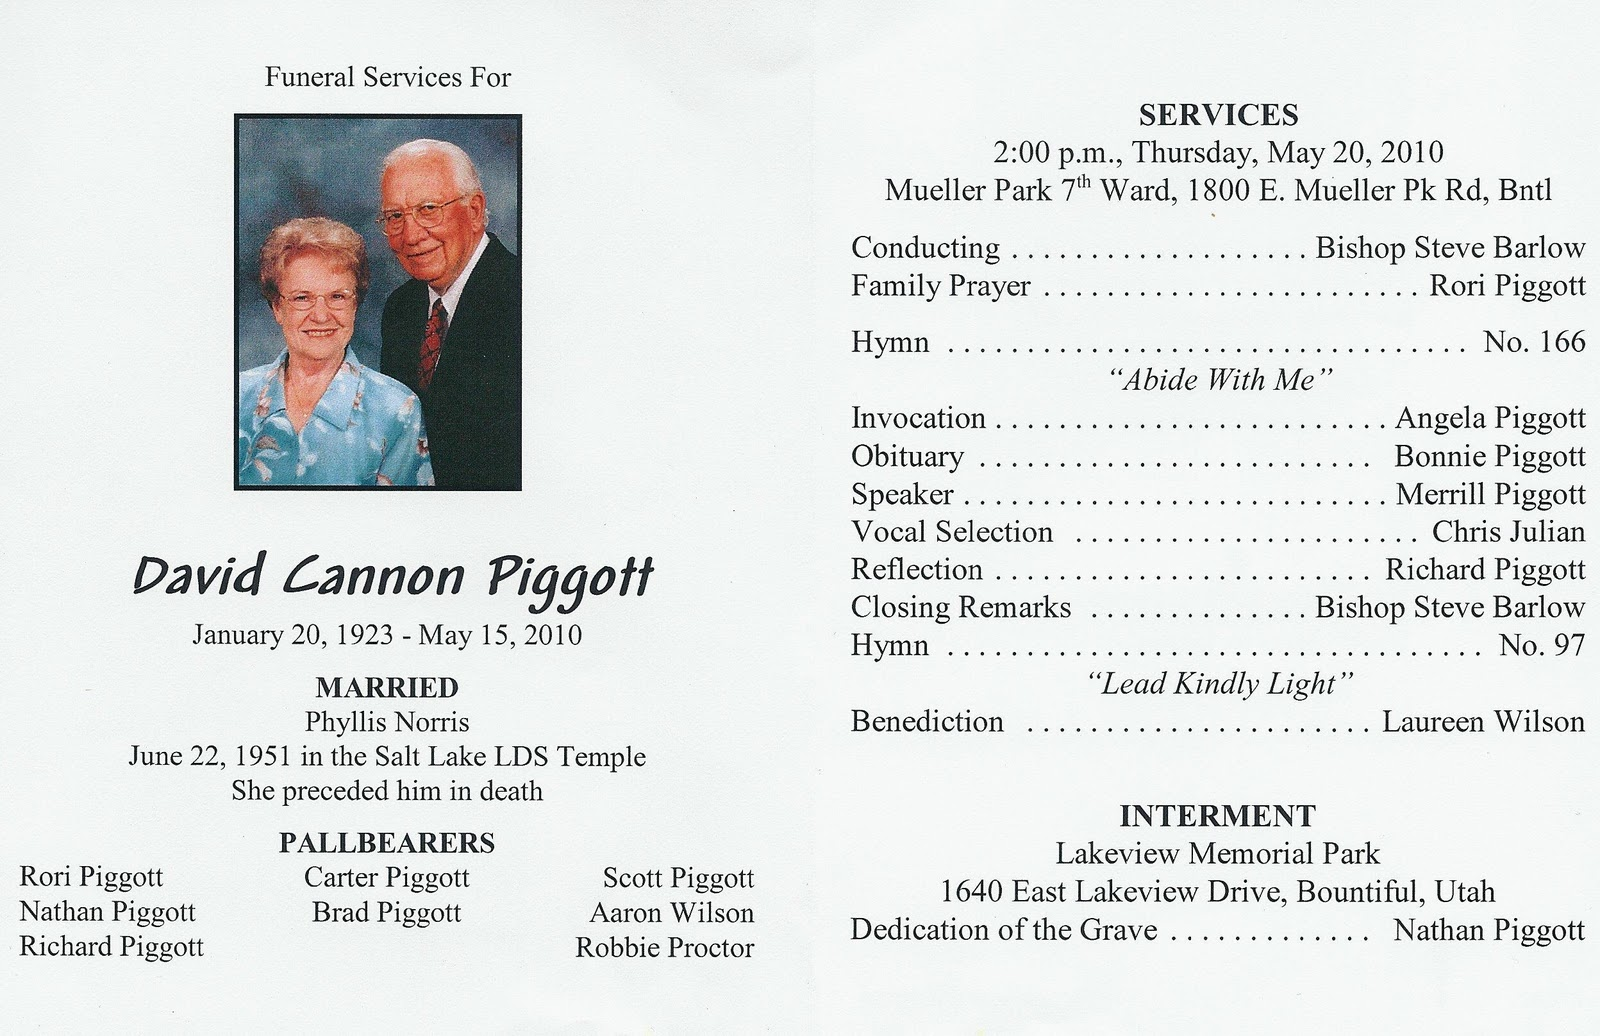 burial of adult services